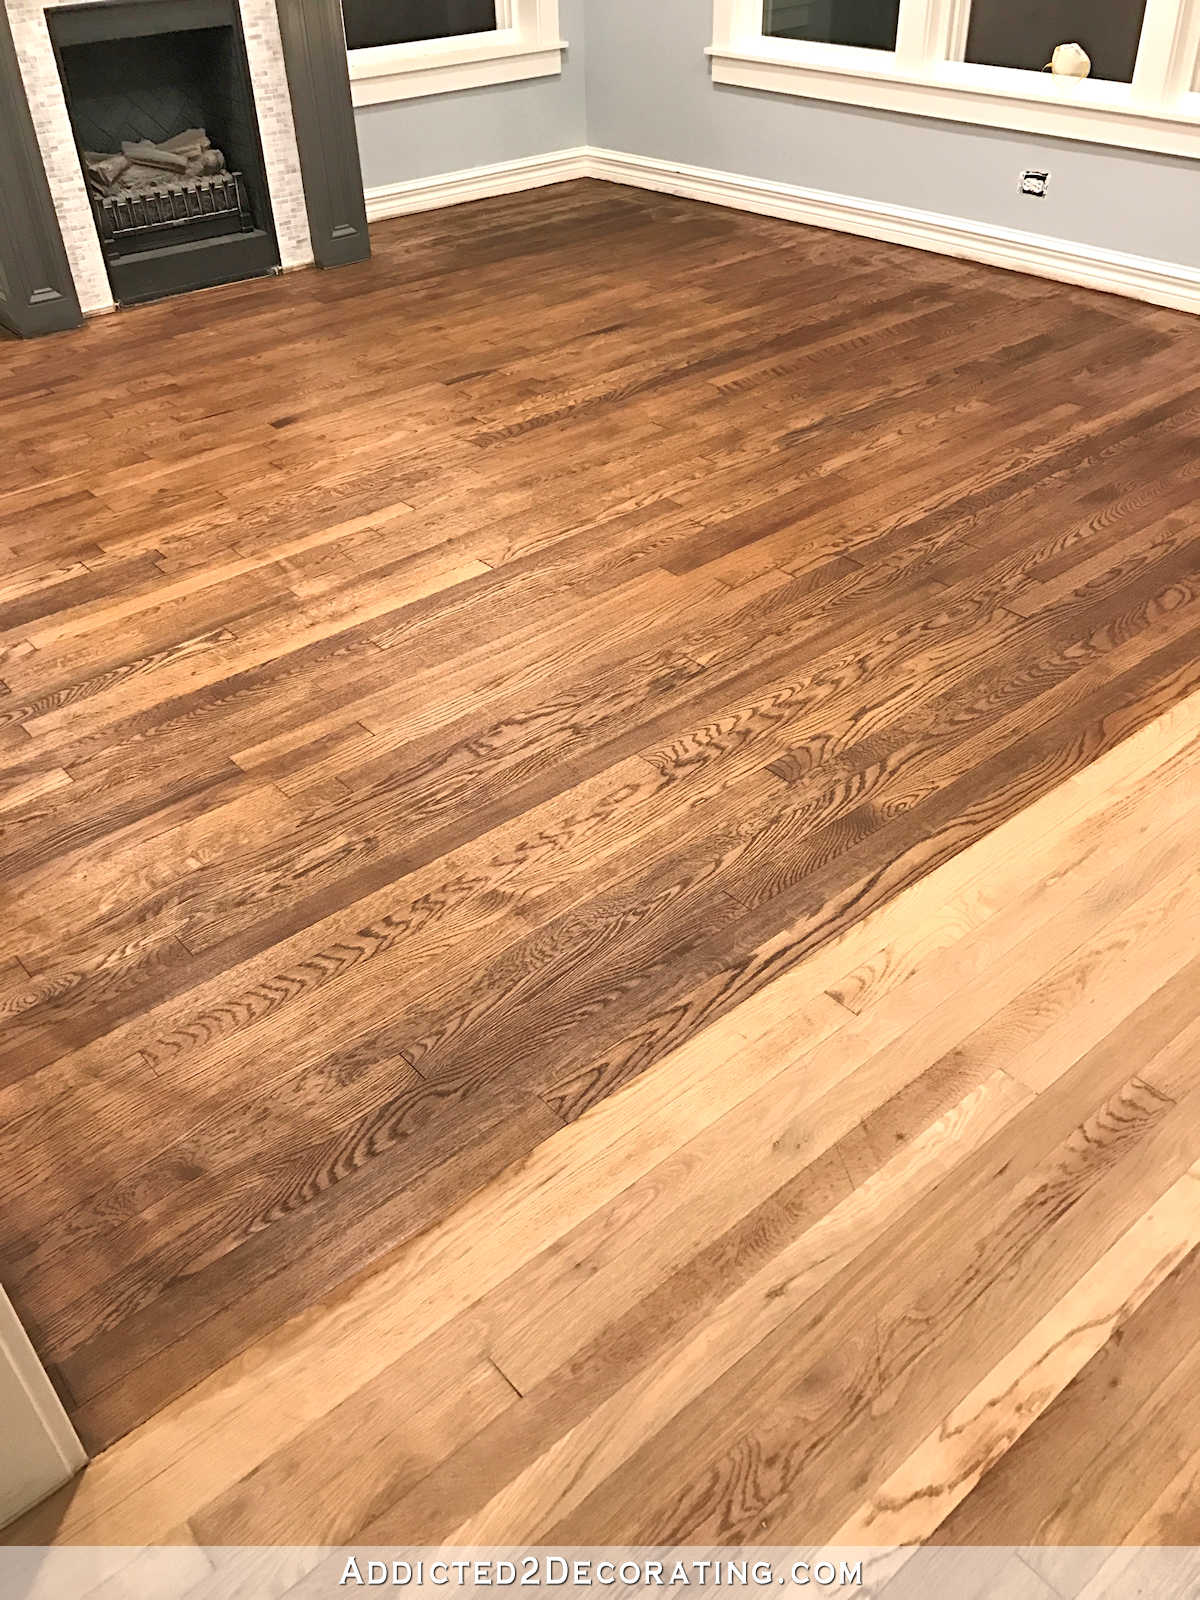 Distinctive Staining My Red Oak Hardwood S Red Oak Stained Red Oak Stained Light Staining Red Oak Hardwood S Stain On Living Room Adventures houzz 01 Red Oak Stain